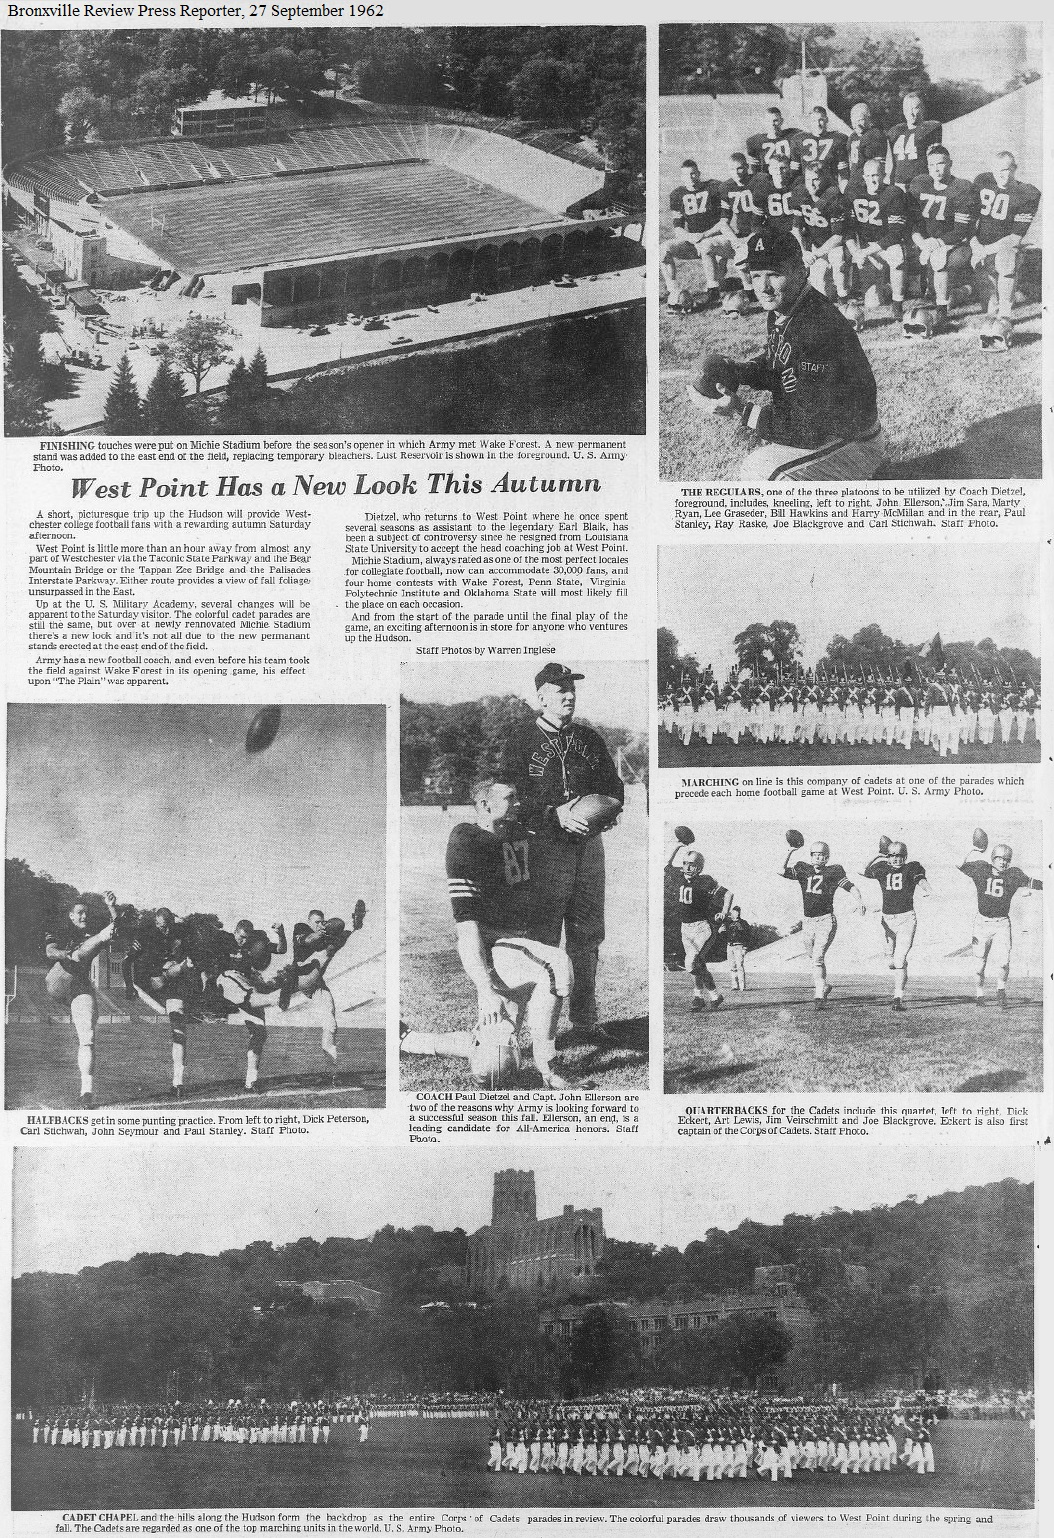 ArmyFB_1962_NewLook_BronxvilleReviewPressReporter_Sep271962